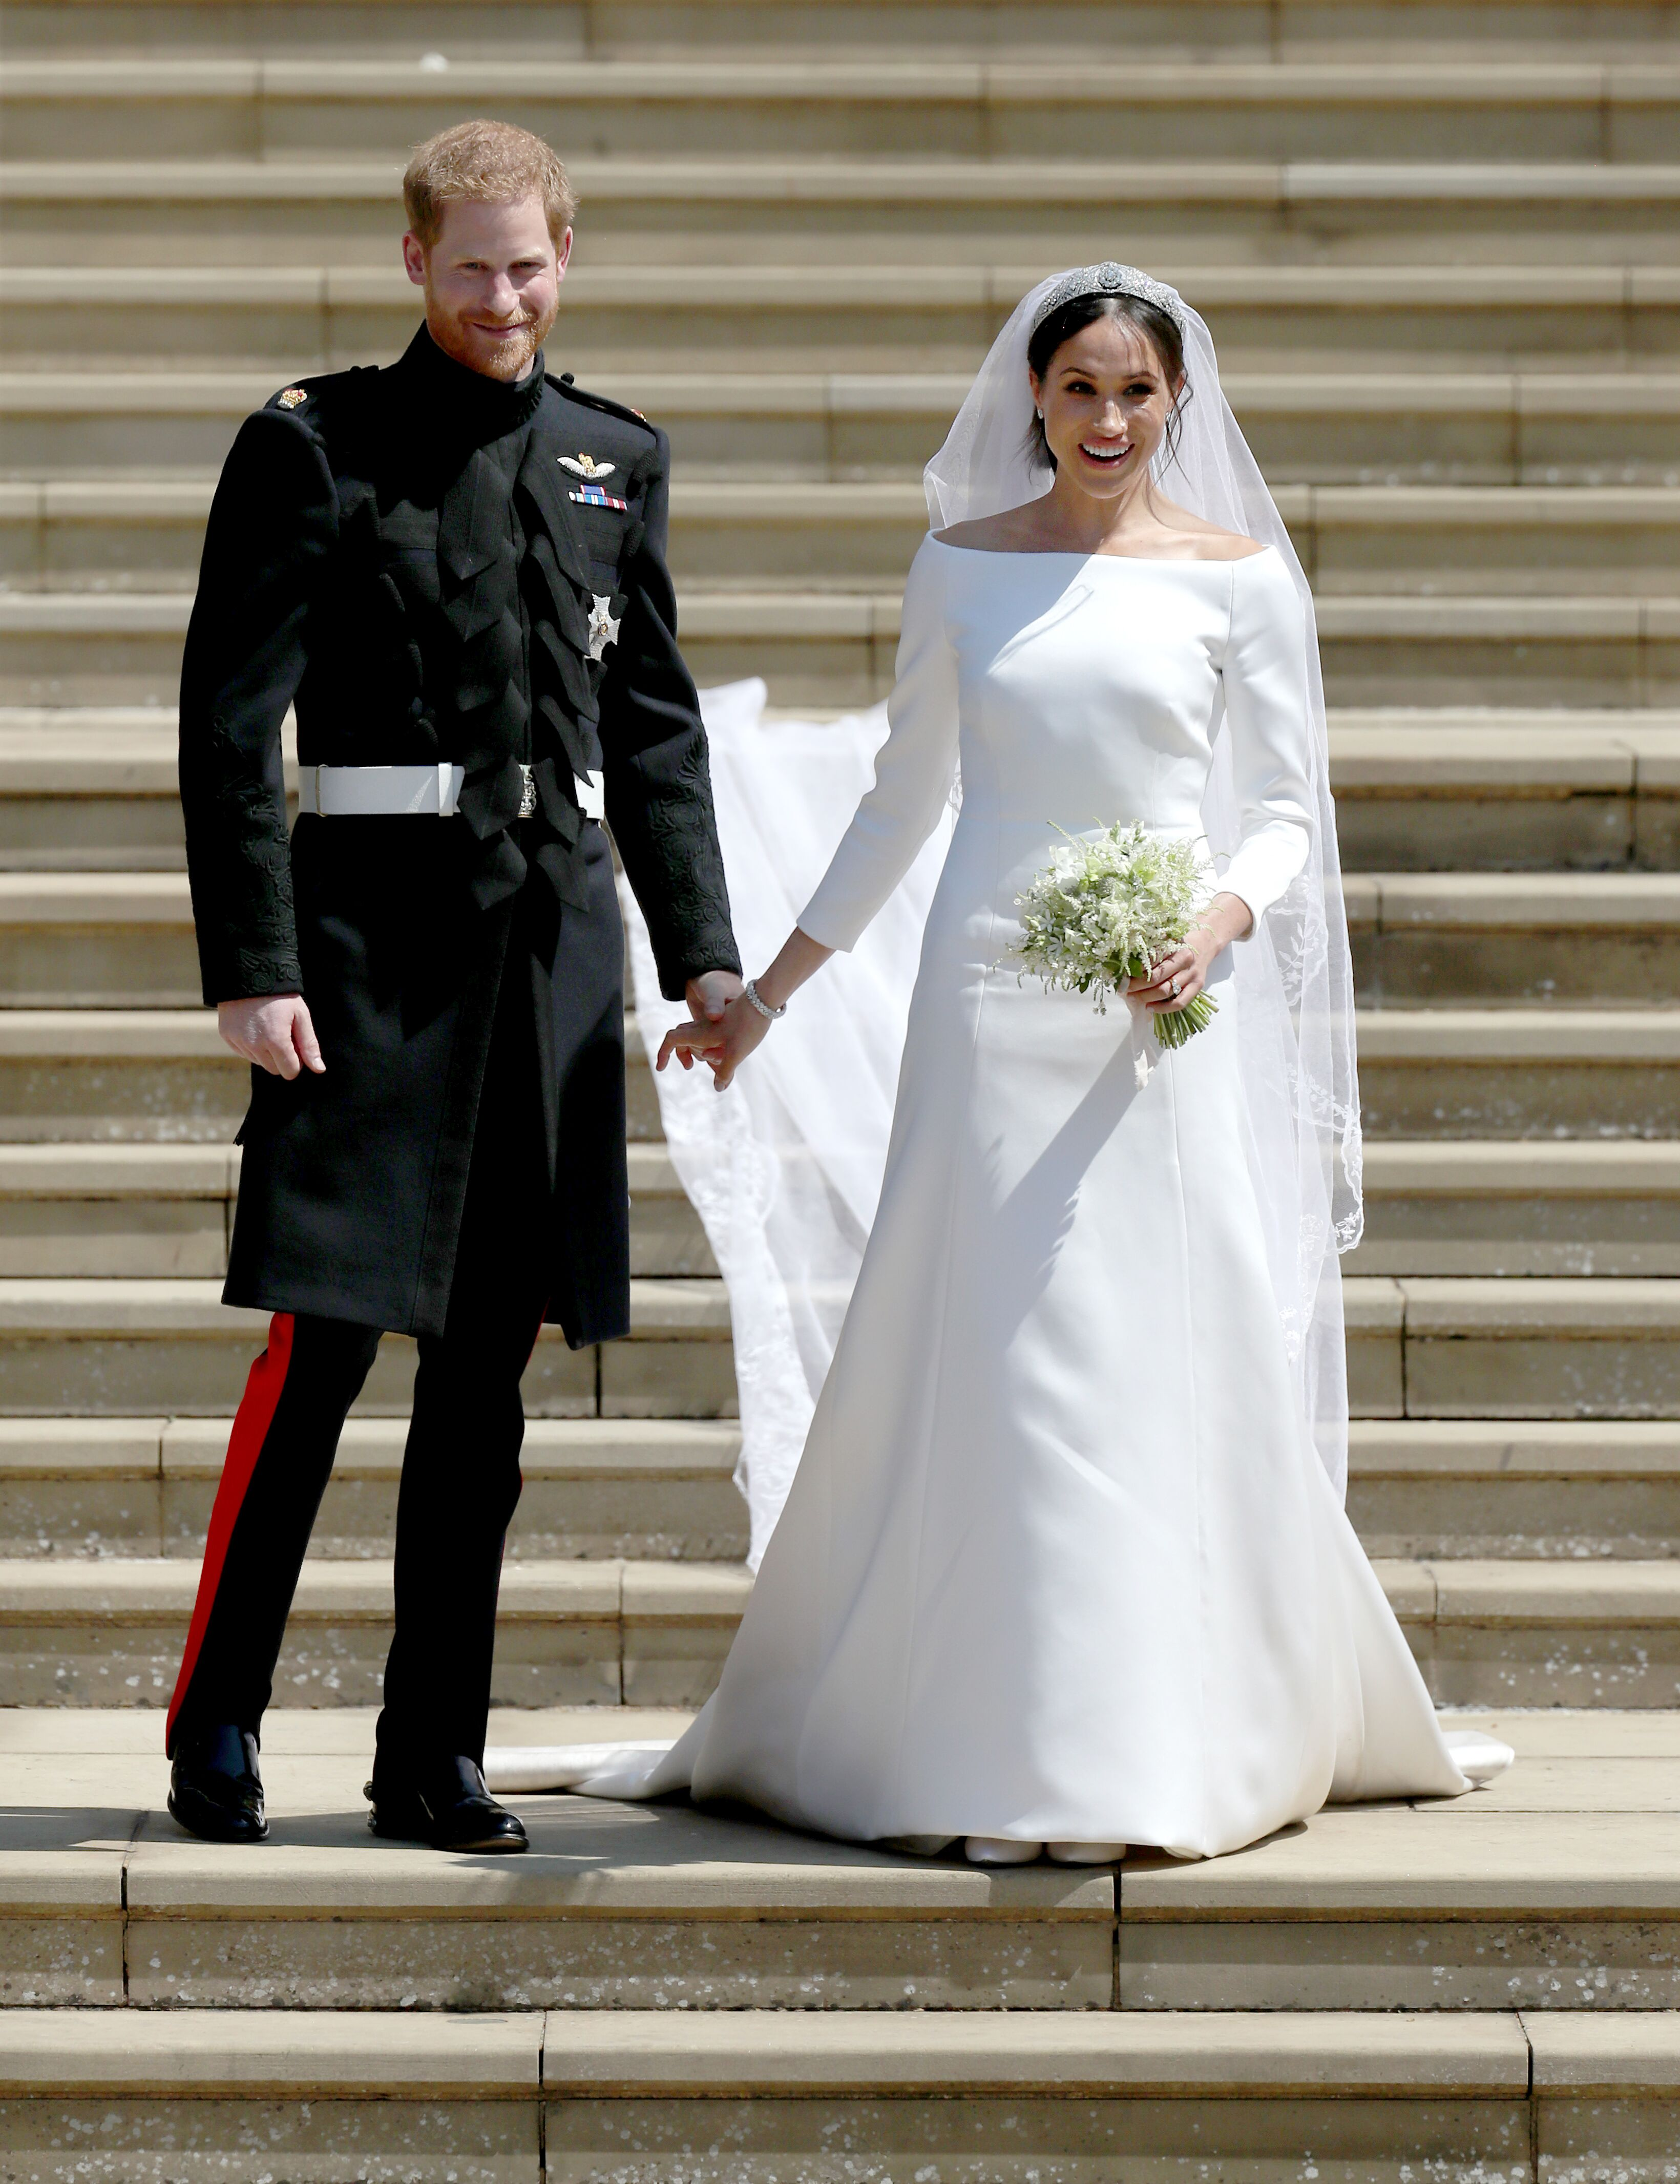 Prince Harry and Meghan Markle's Wedding / Getty Images